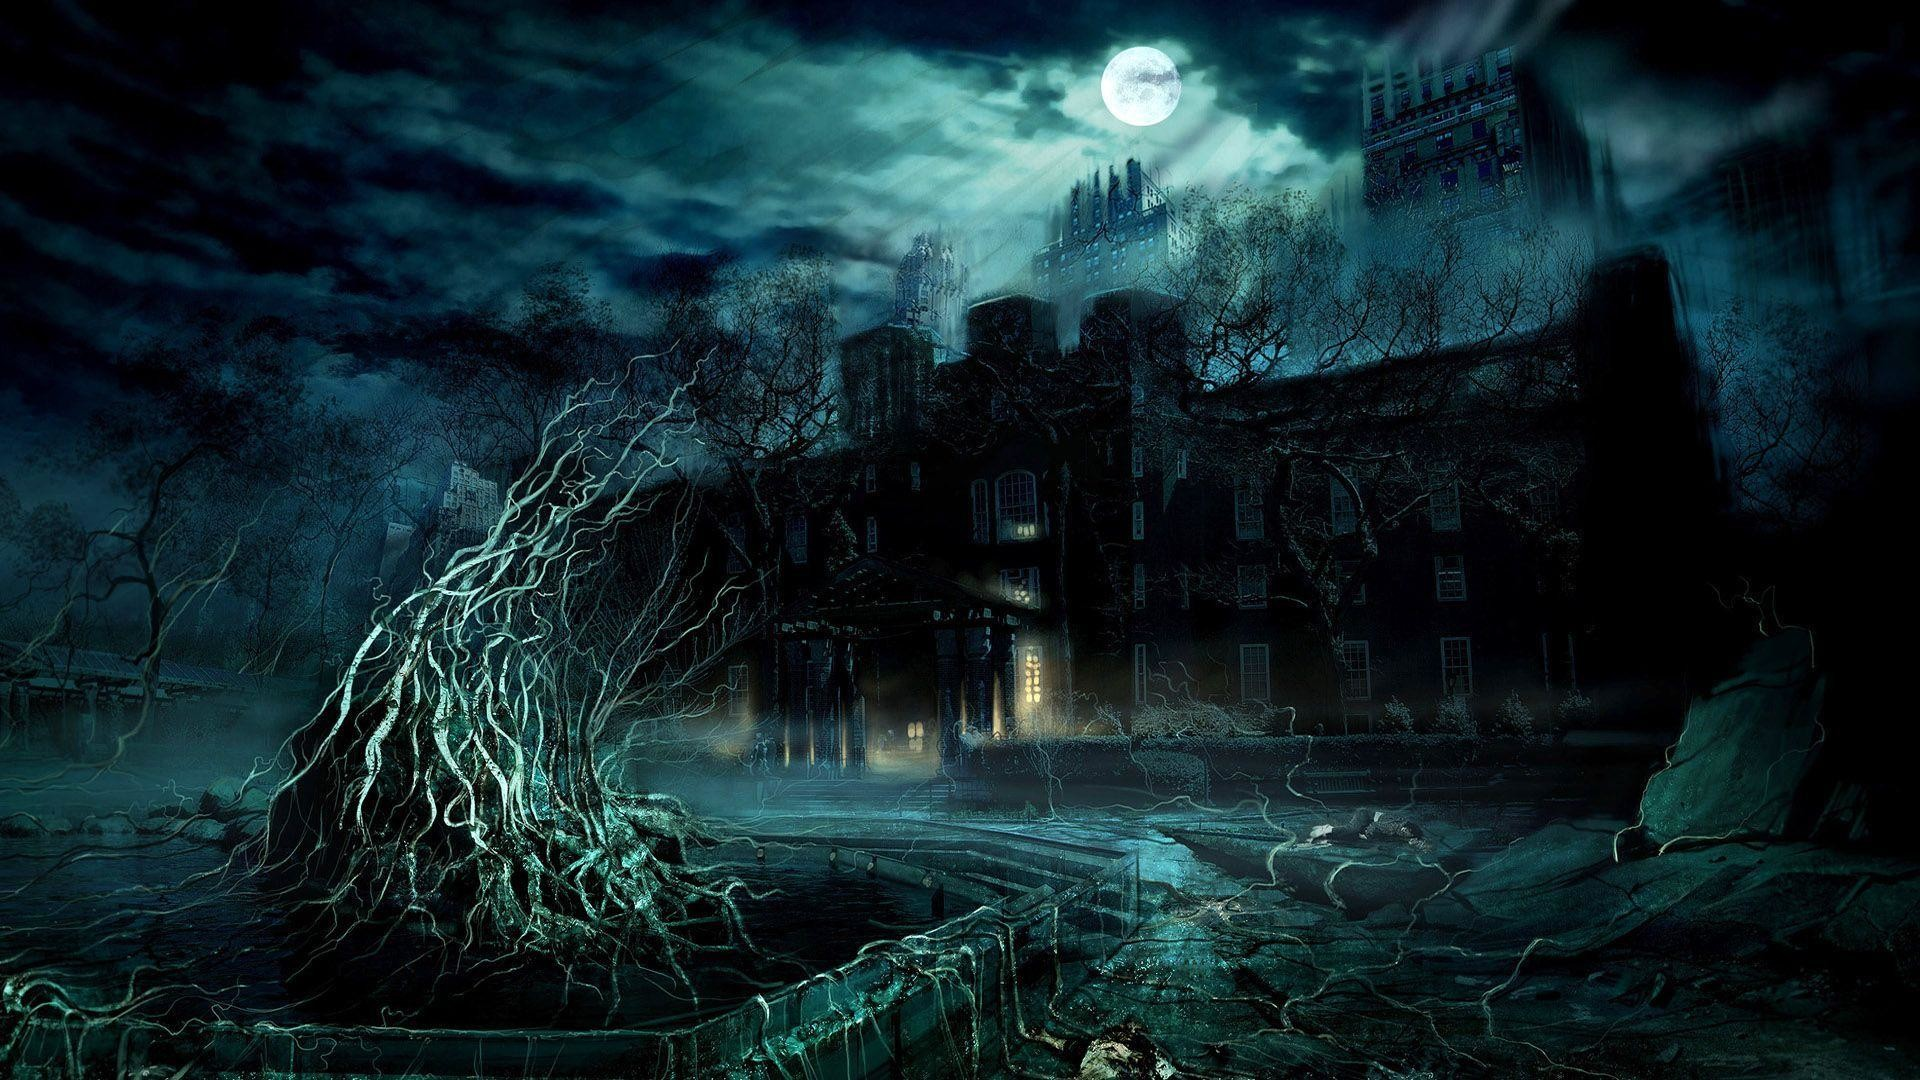 1920x1080 Download Scary Dark Castle Wallpaper | Free Wallpapers